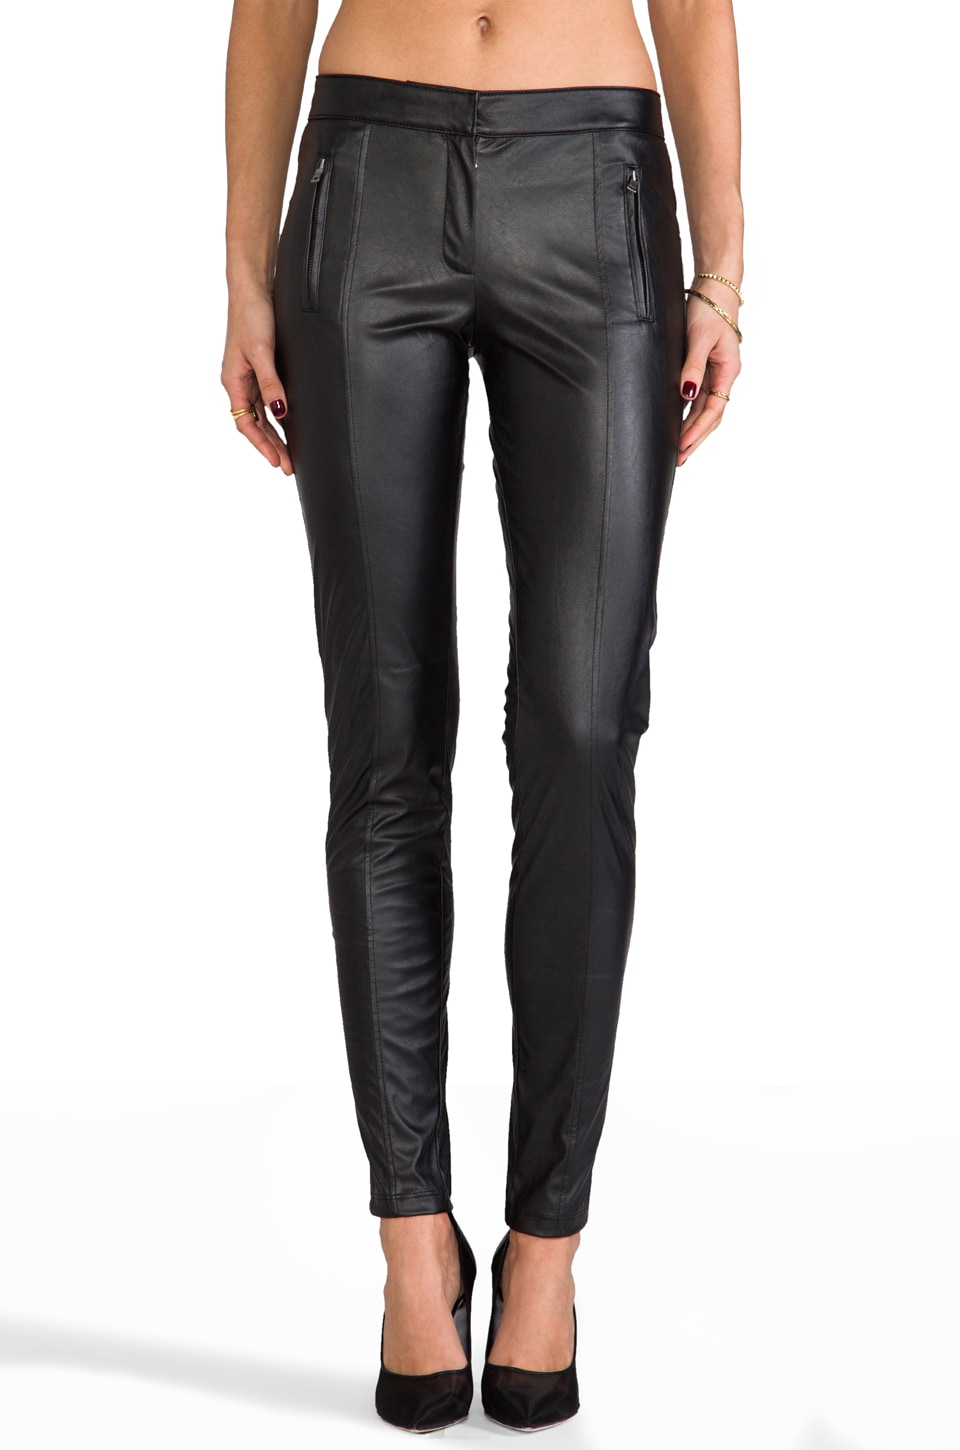 David Lerner The Monroe Pant Vegan Leather in Black